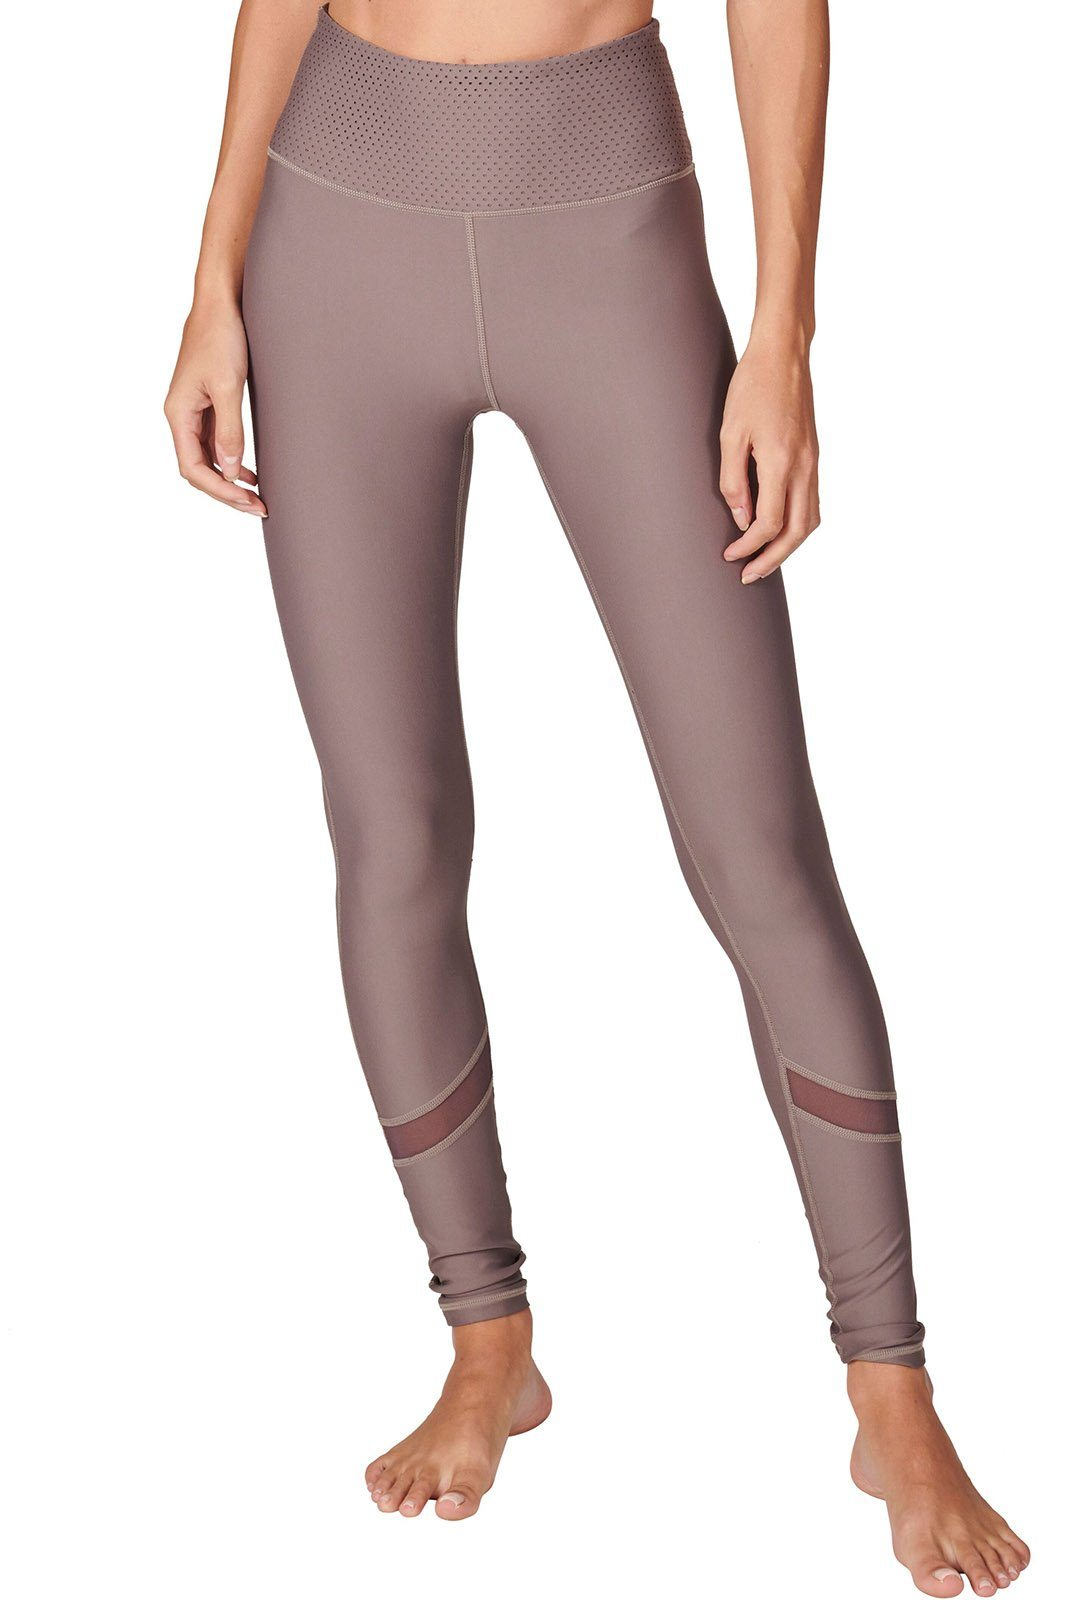 Abbey Stone Legging - Cocoa - All Fenix | INFLOWSTYLE